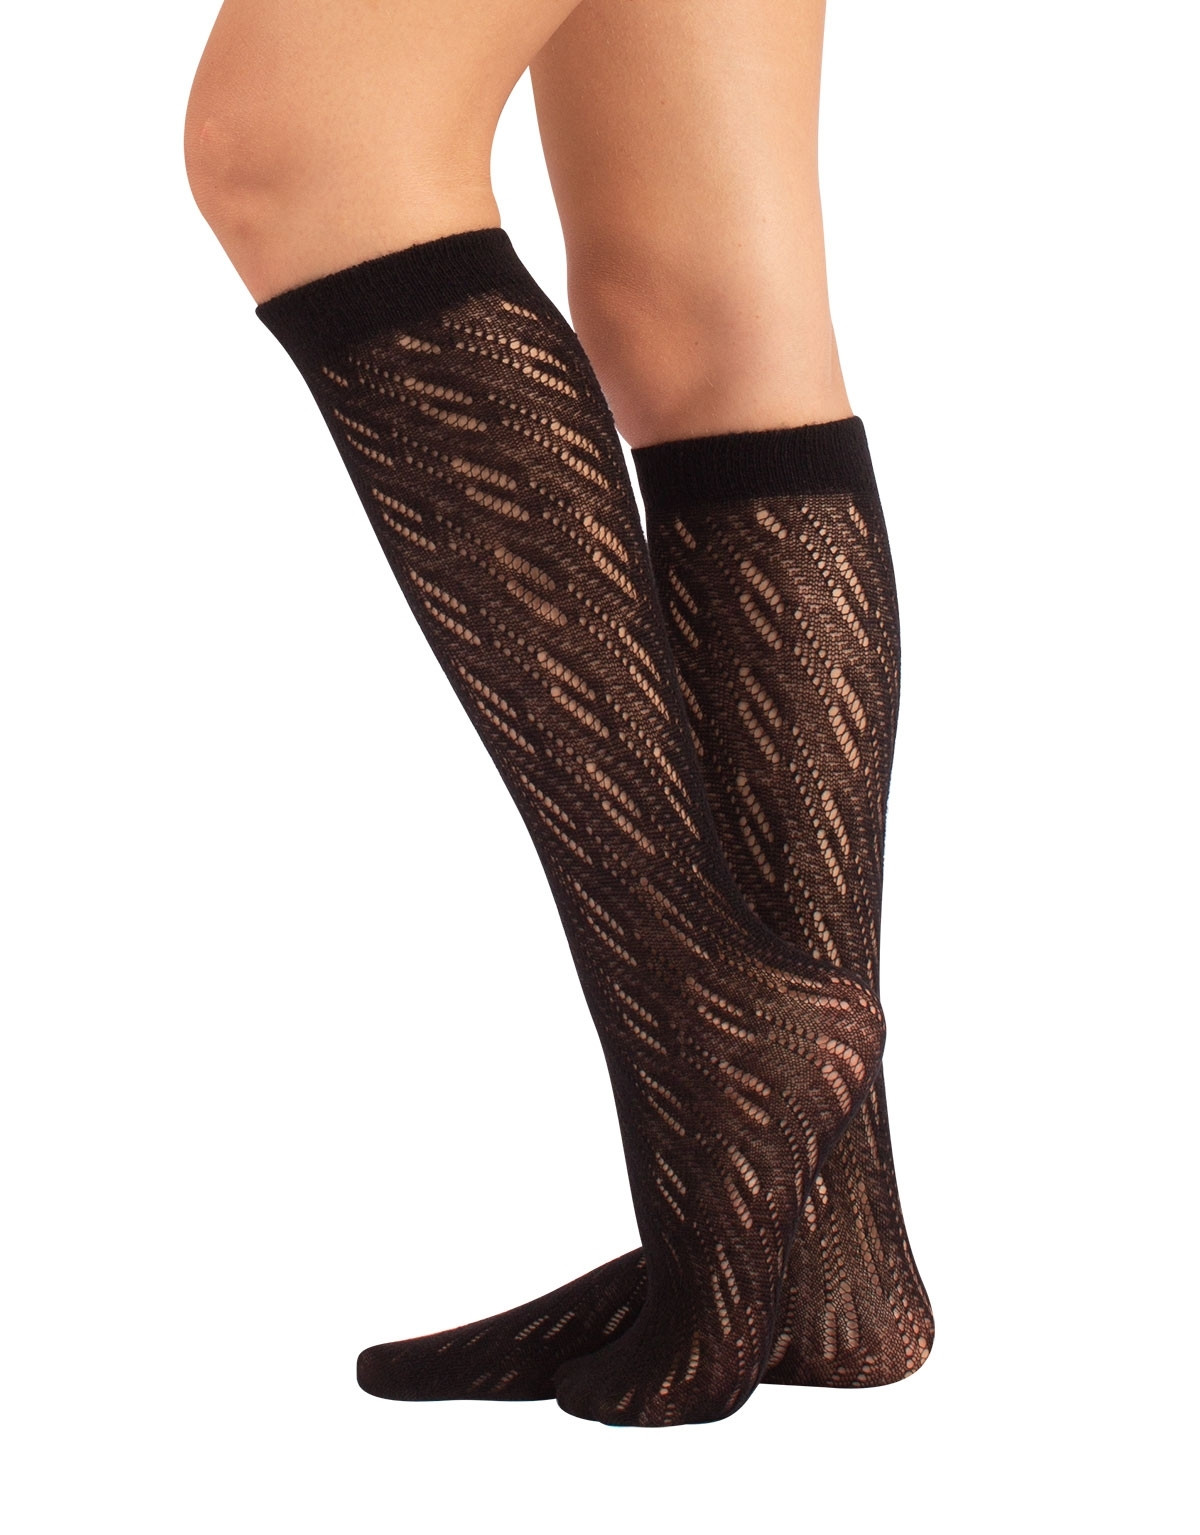 WOOL KNEE HIGH SOCKS RIBBED PATTERN - 300 DEN